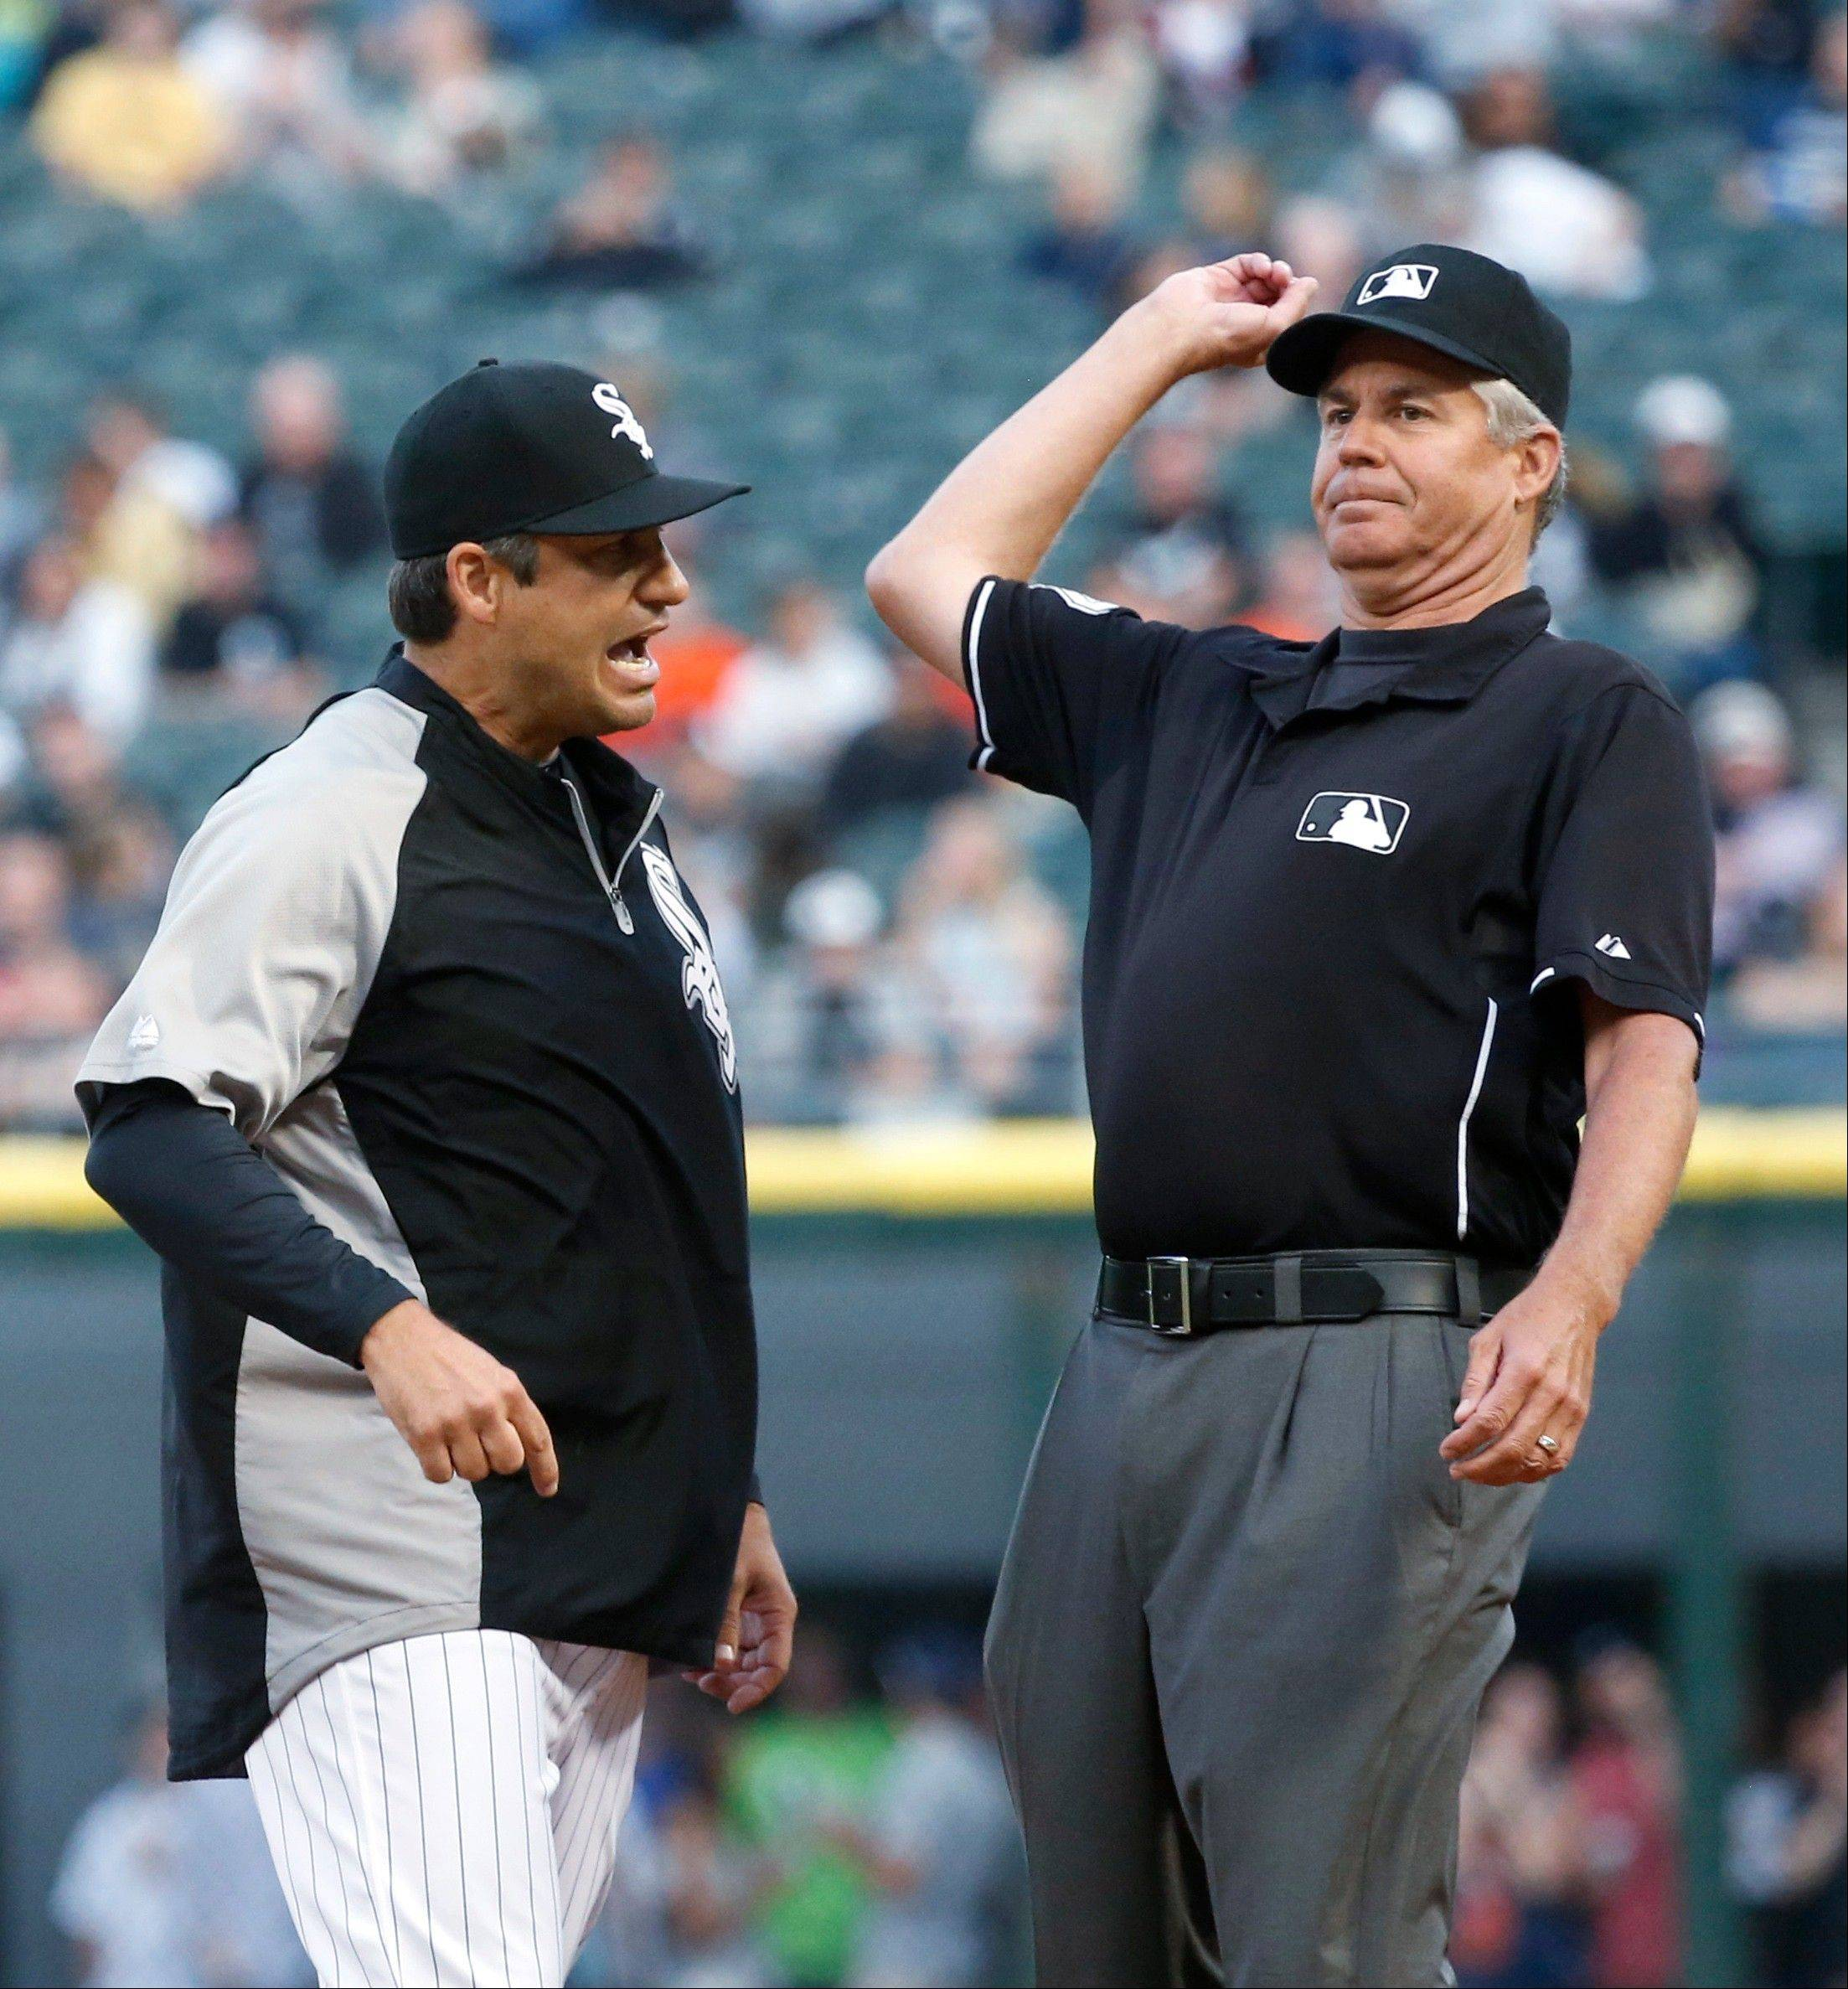 It wasn't an easy year for White Sox manager Robin Ventura, who was tossed out of the game in the first inning against Detroit in July. The Sox struggled all season to score runs.